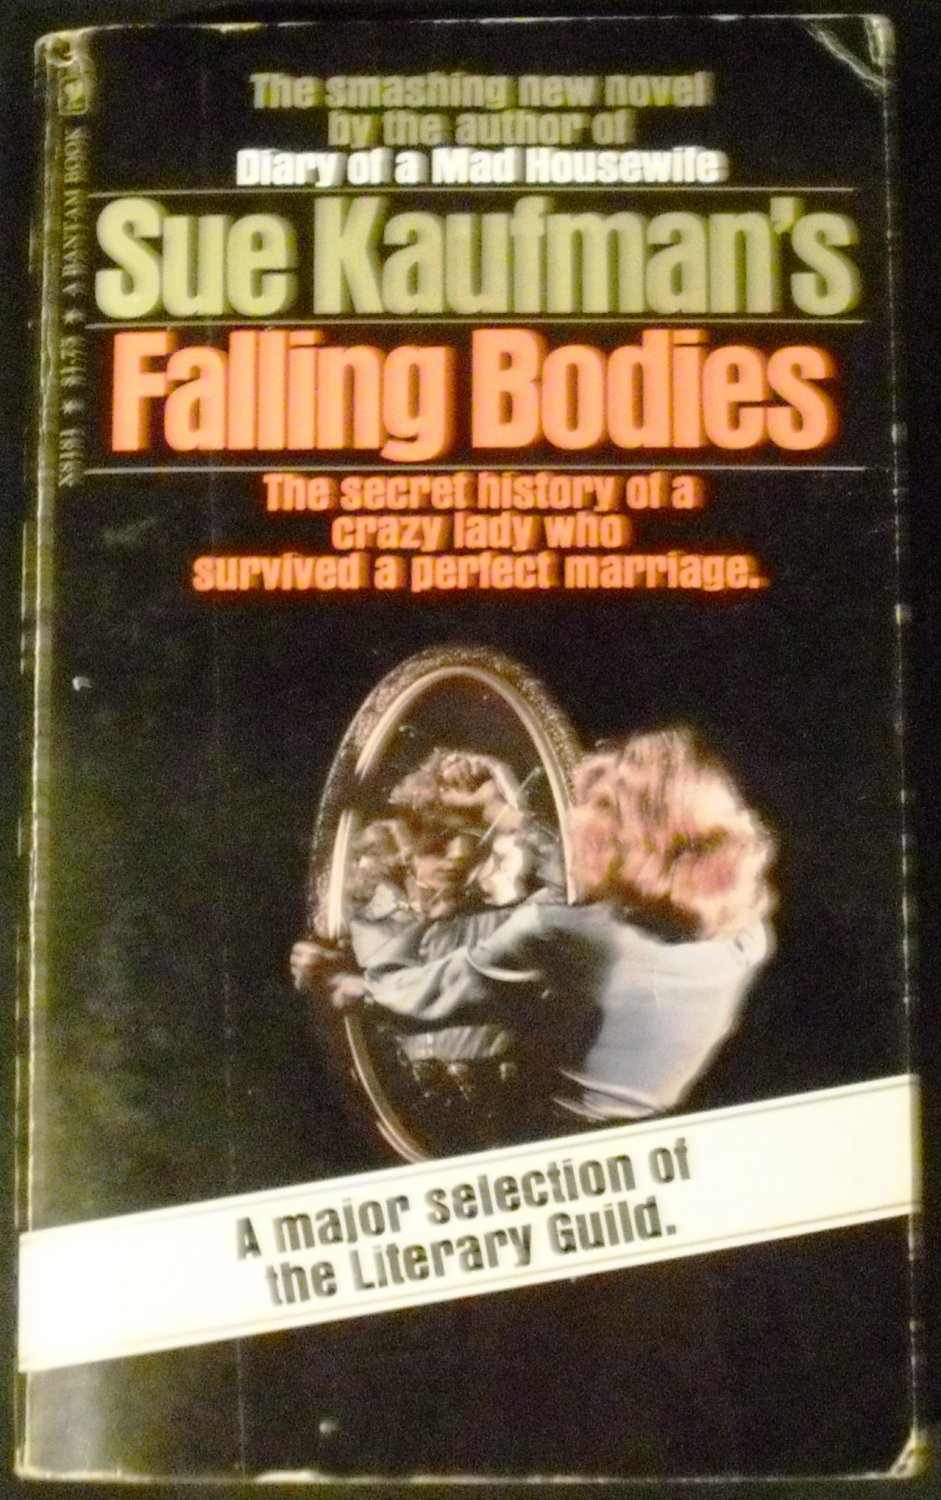 Falling Bodies: The Secret HIstory of the Creazy Lady who Survived a Perfect Marriage (1975)